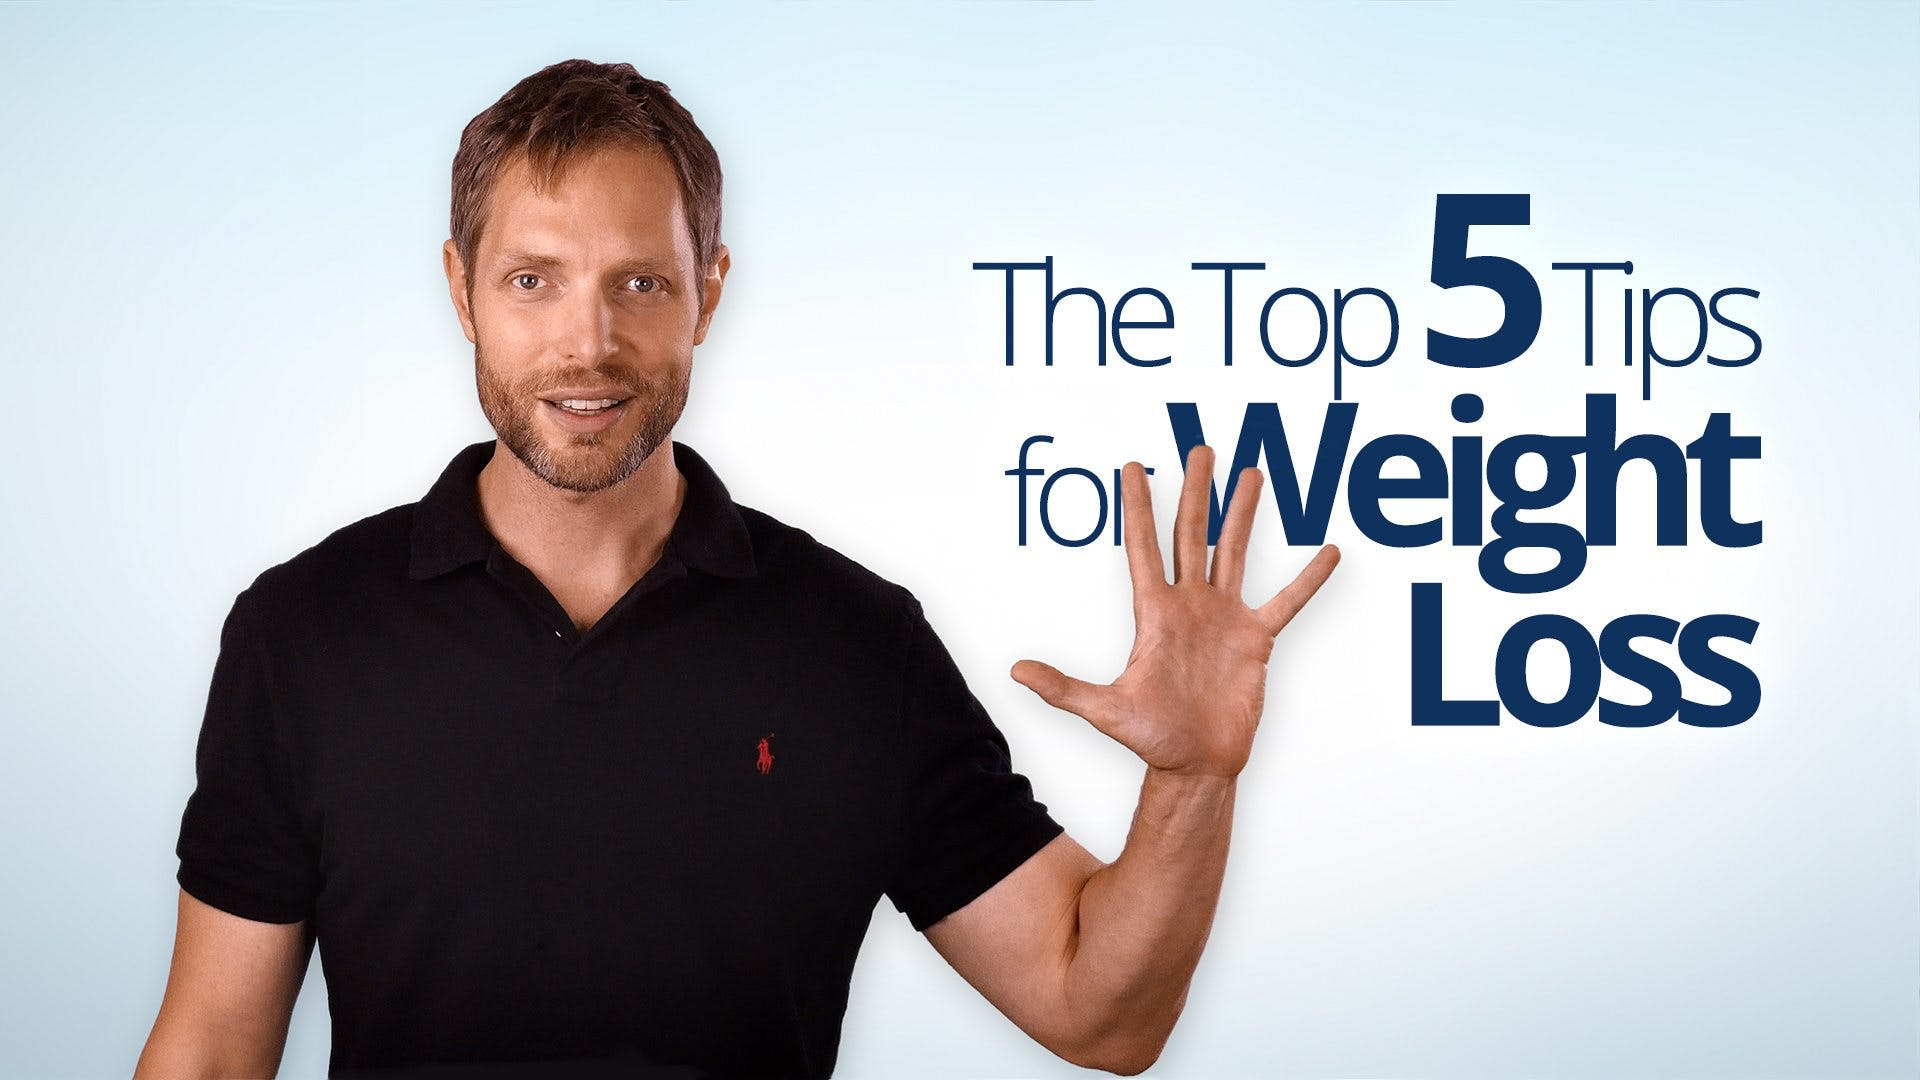 The top 5 tips to lose weight